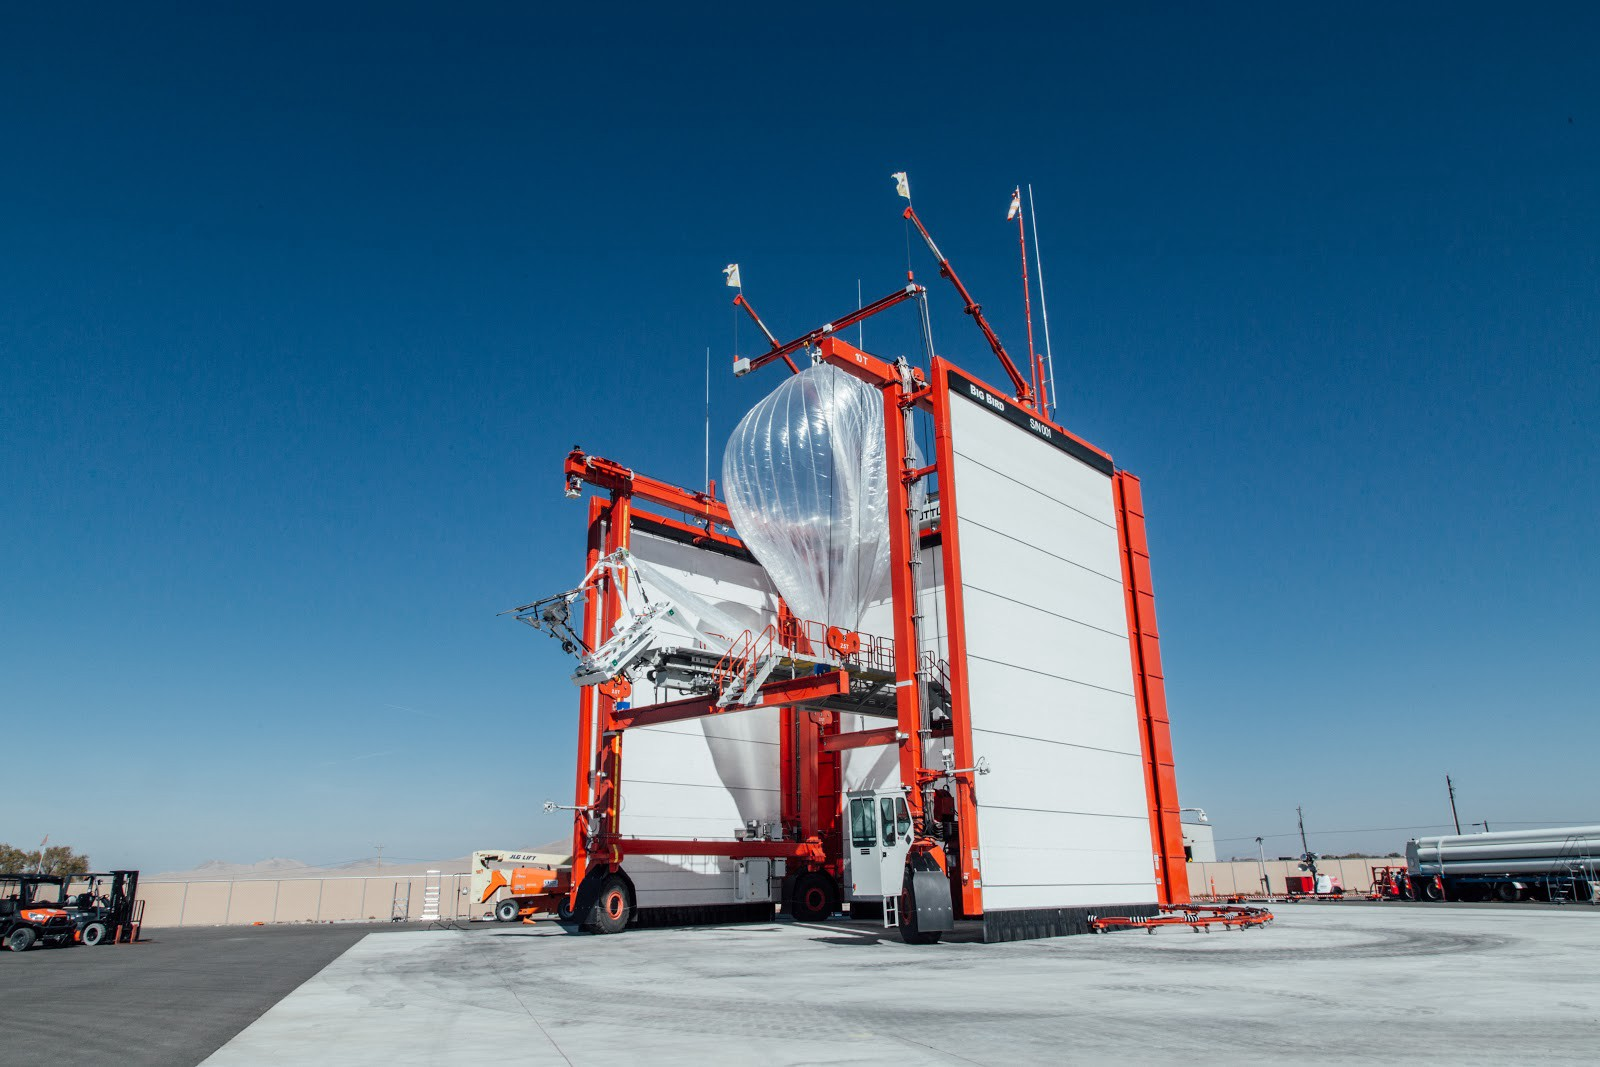 Google's Parent Alphabet Deploys Project Loon, Brings Internet Service To Puerto Rico